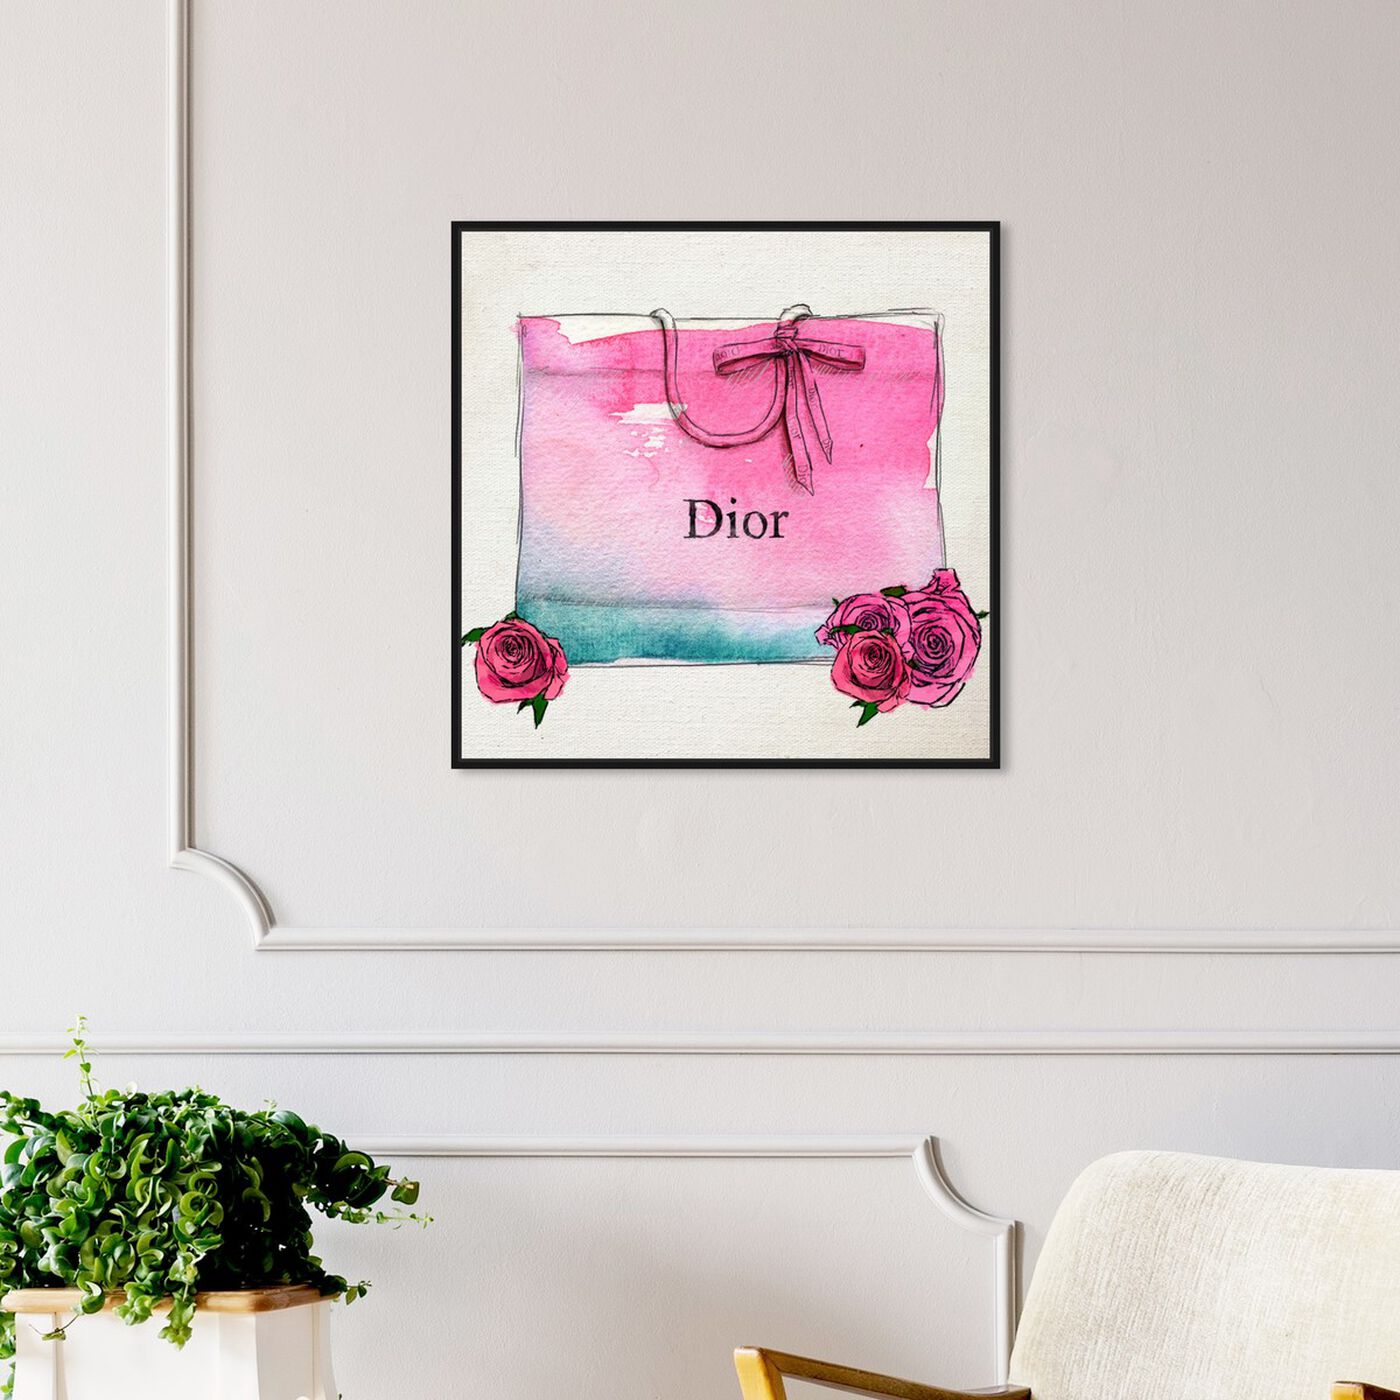 Hanging view of Hazy Eyed I featuring fashion and glam and lifestyle art.